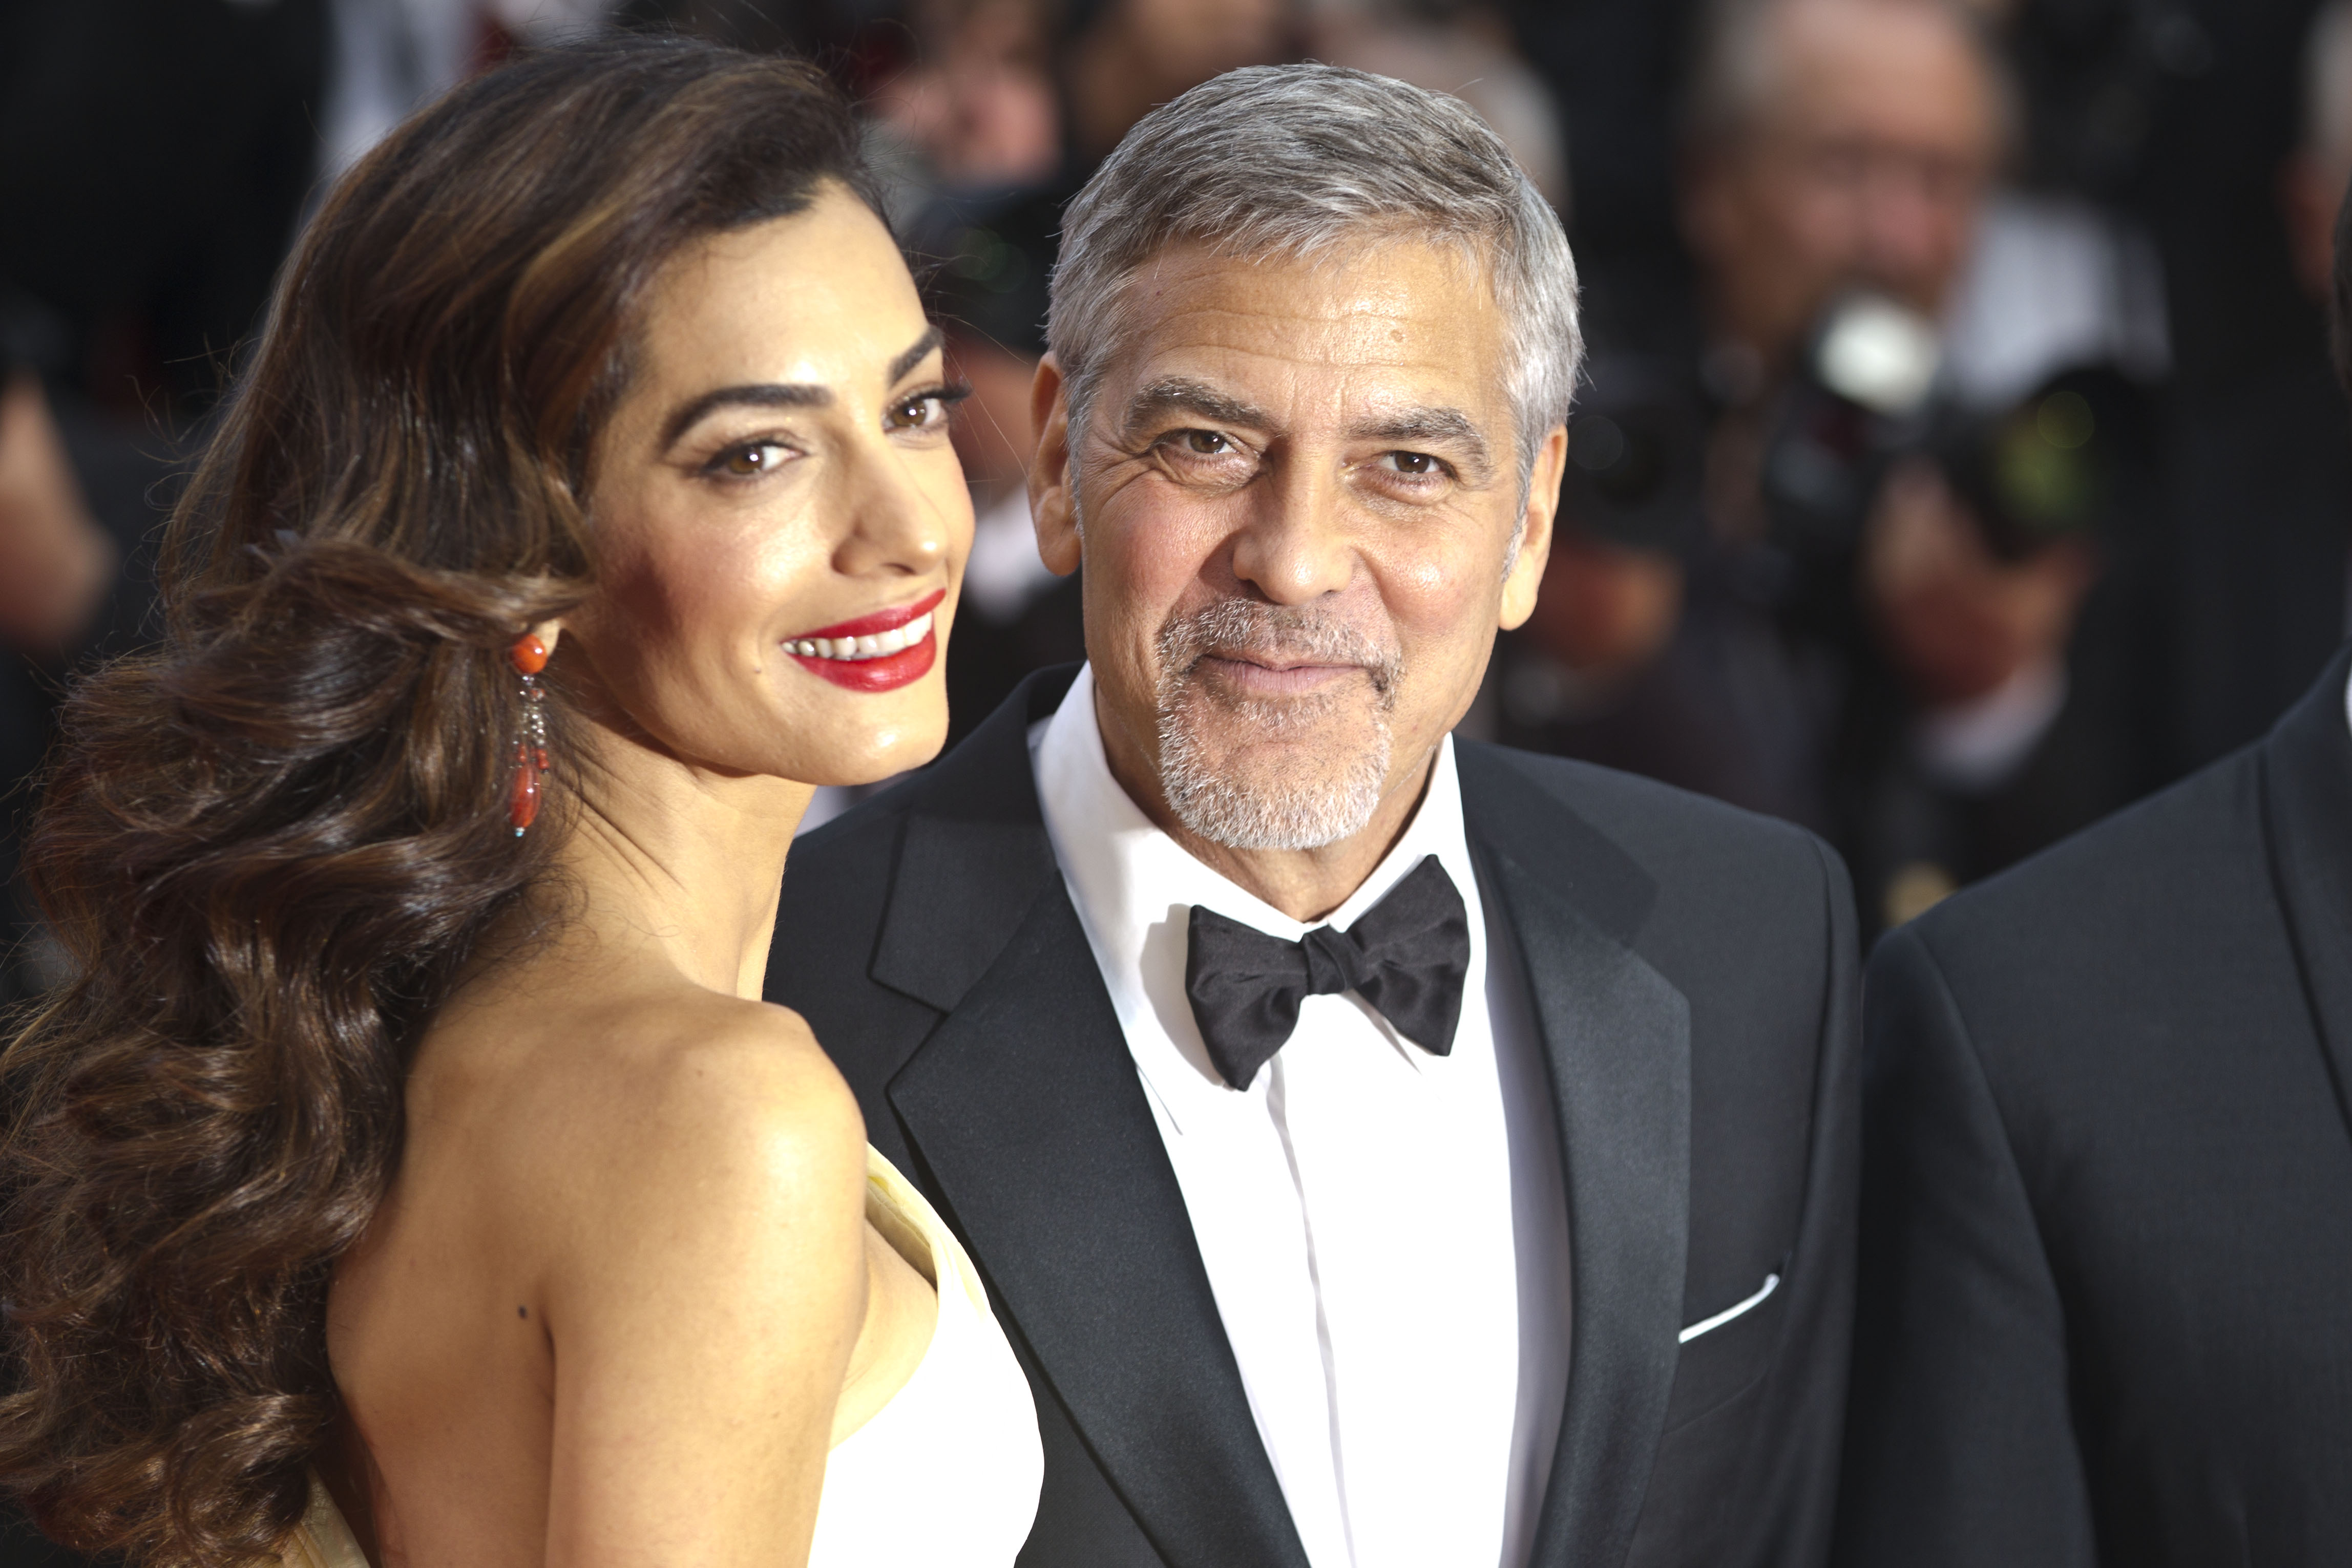 Amal Clooney and George Clooney attend the screening of '